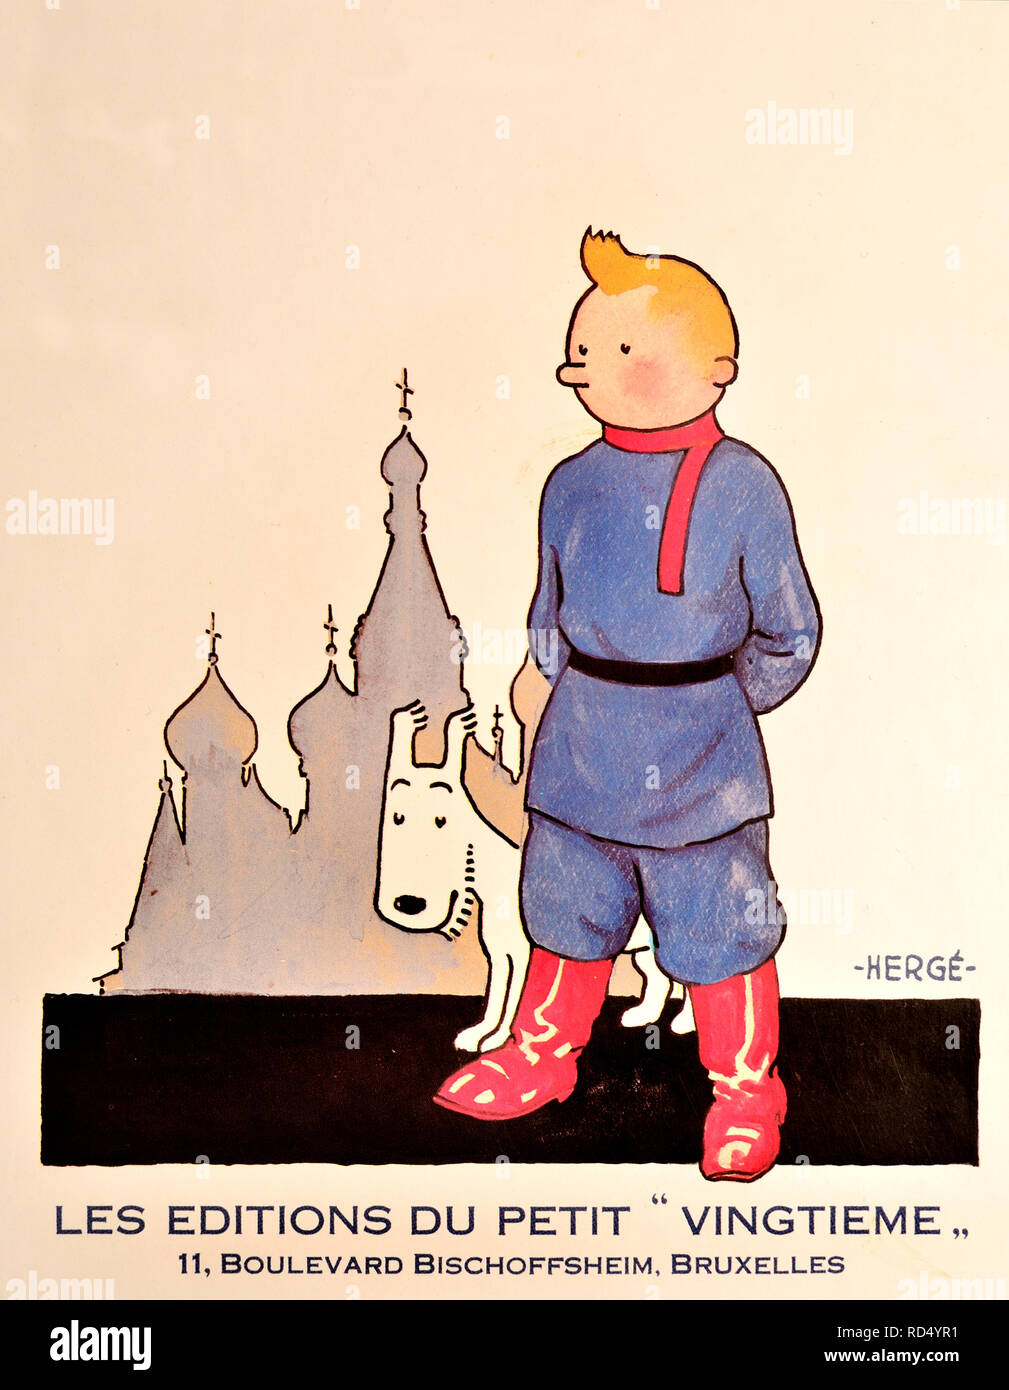 Les Aventures de Tintin au Pays des Soviets / Tintin in the Land of the Soviets (French edition) The first Tintin book, originally published 1930 - re - Stock Image